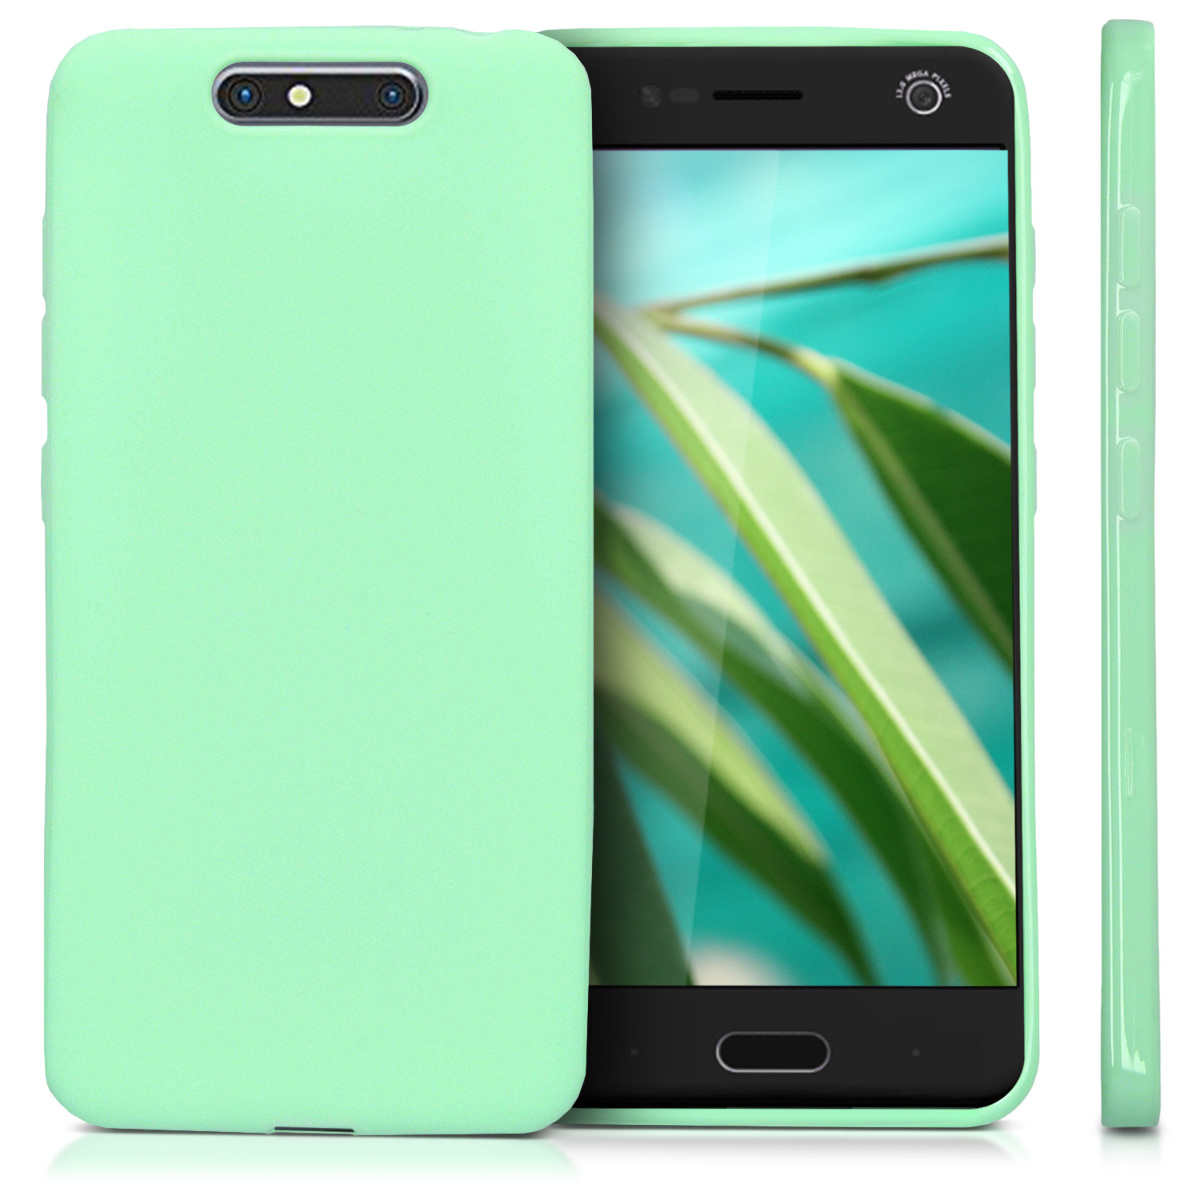 Kwmobile Tpu Silicone Cover For Zte Blade V8 Soft Case